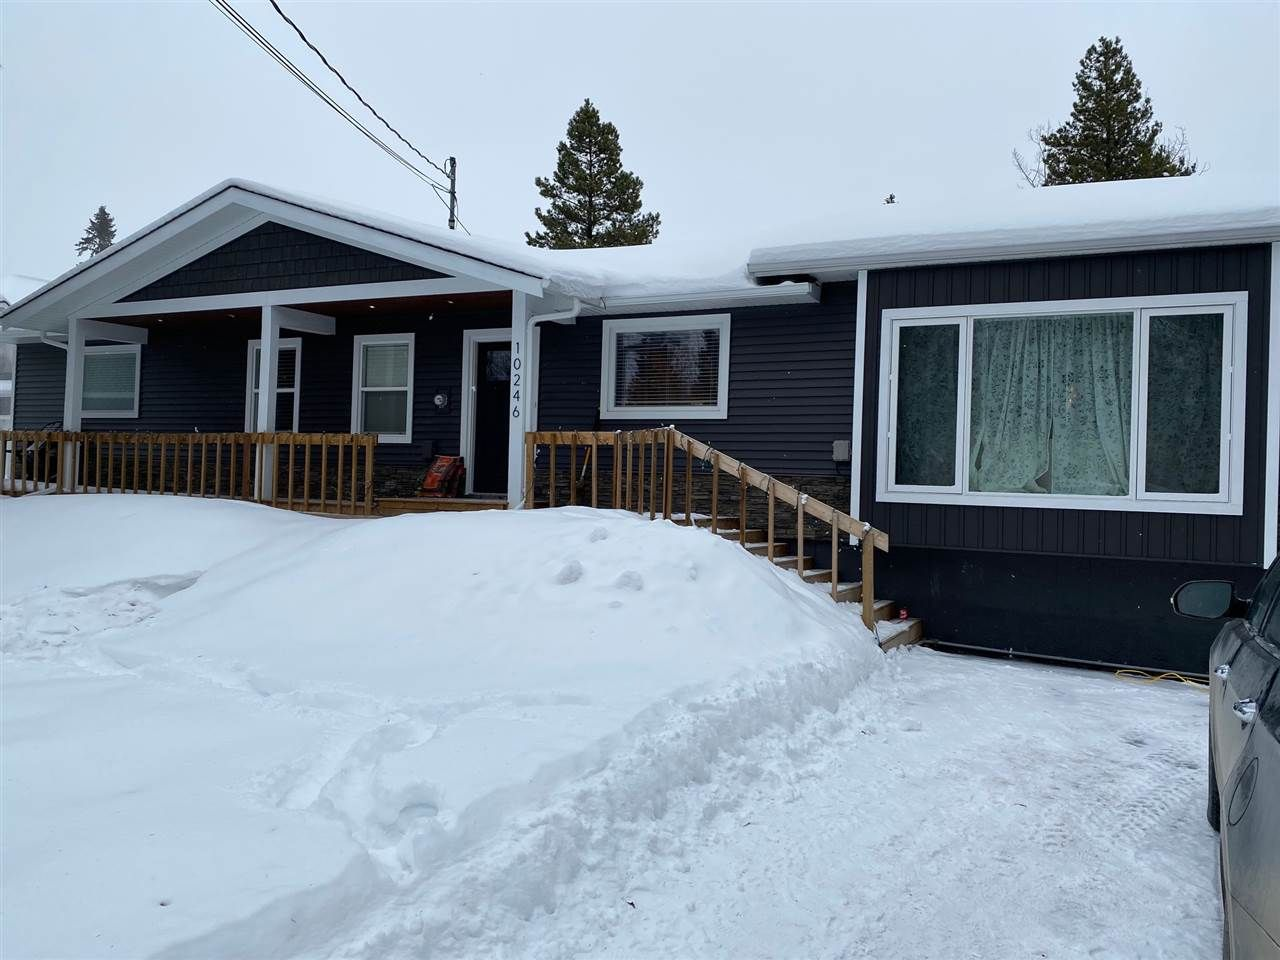 Main Photo: 10246 JUTLAND Road in Prince George: Jensen House for sale (PG City South (Zone 74))  : MLS®# R2541088